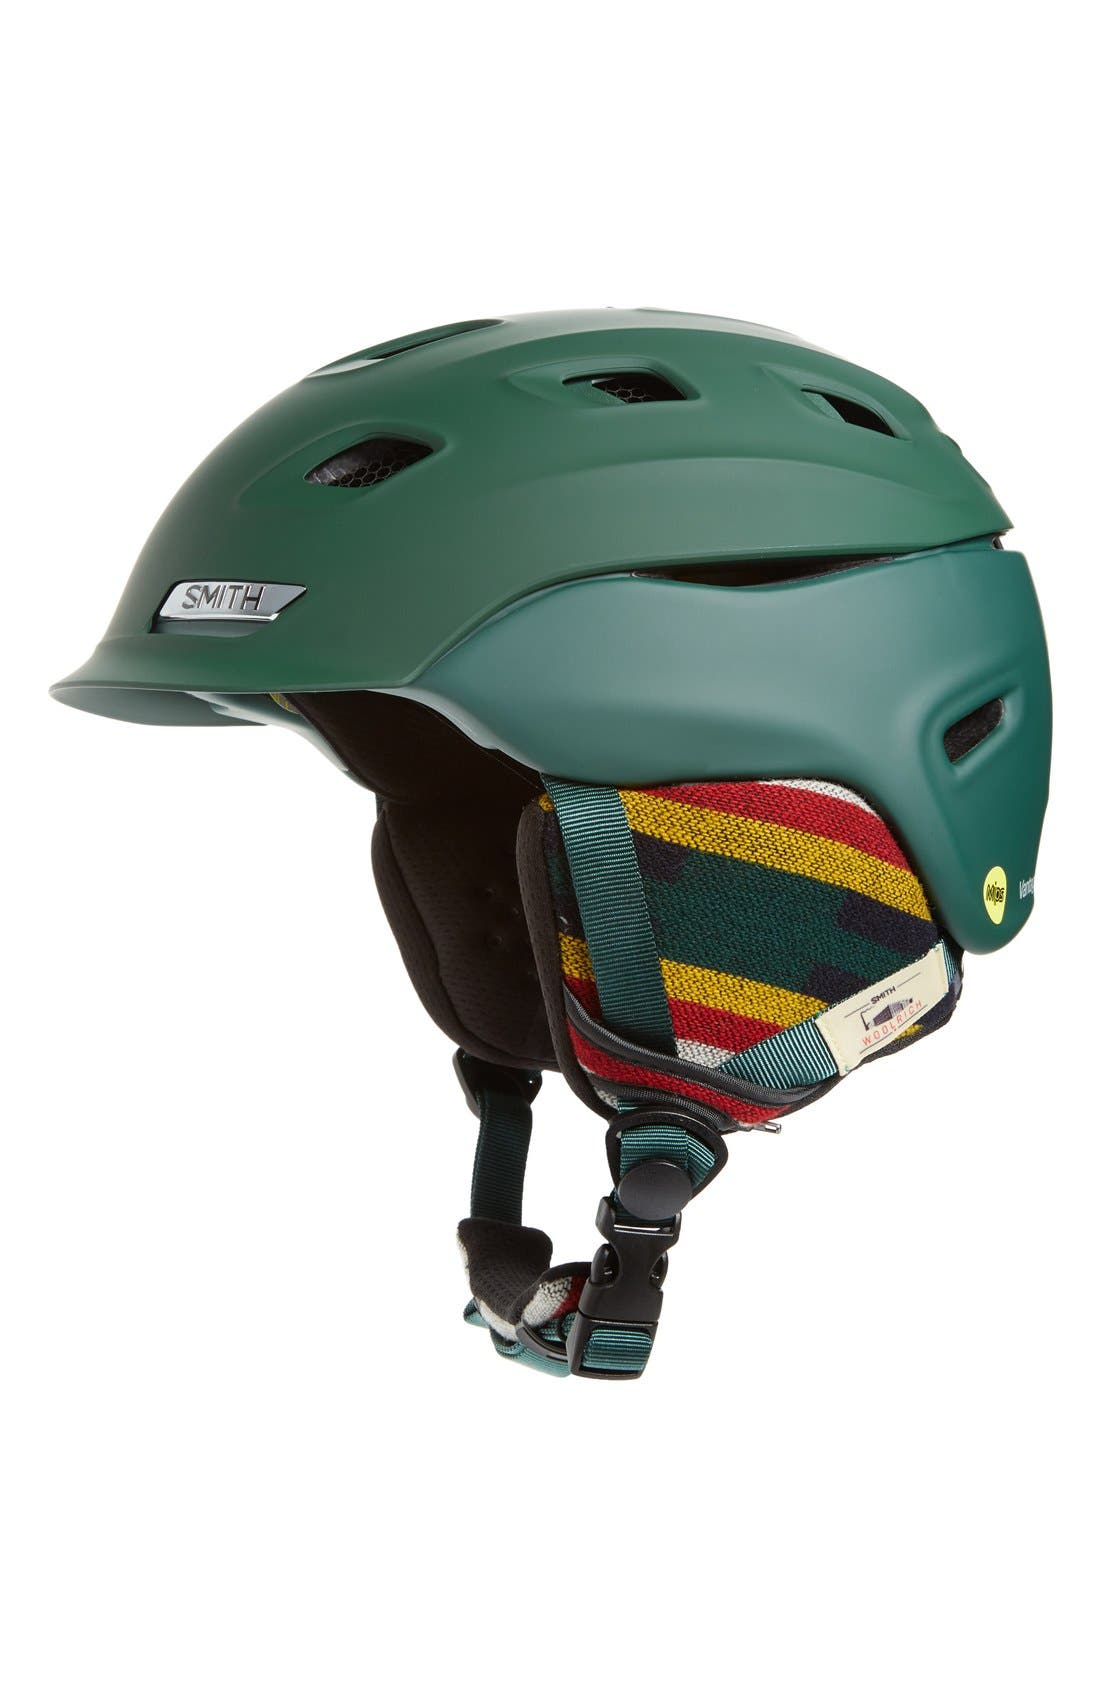 Alternate Image 1 Selected - Smith Vantage Snow Helmet with MIPS